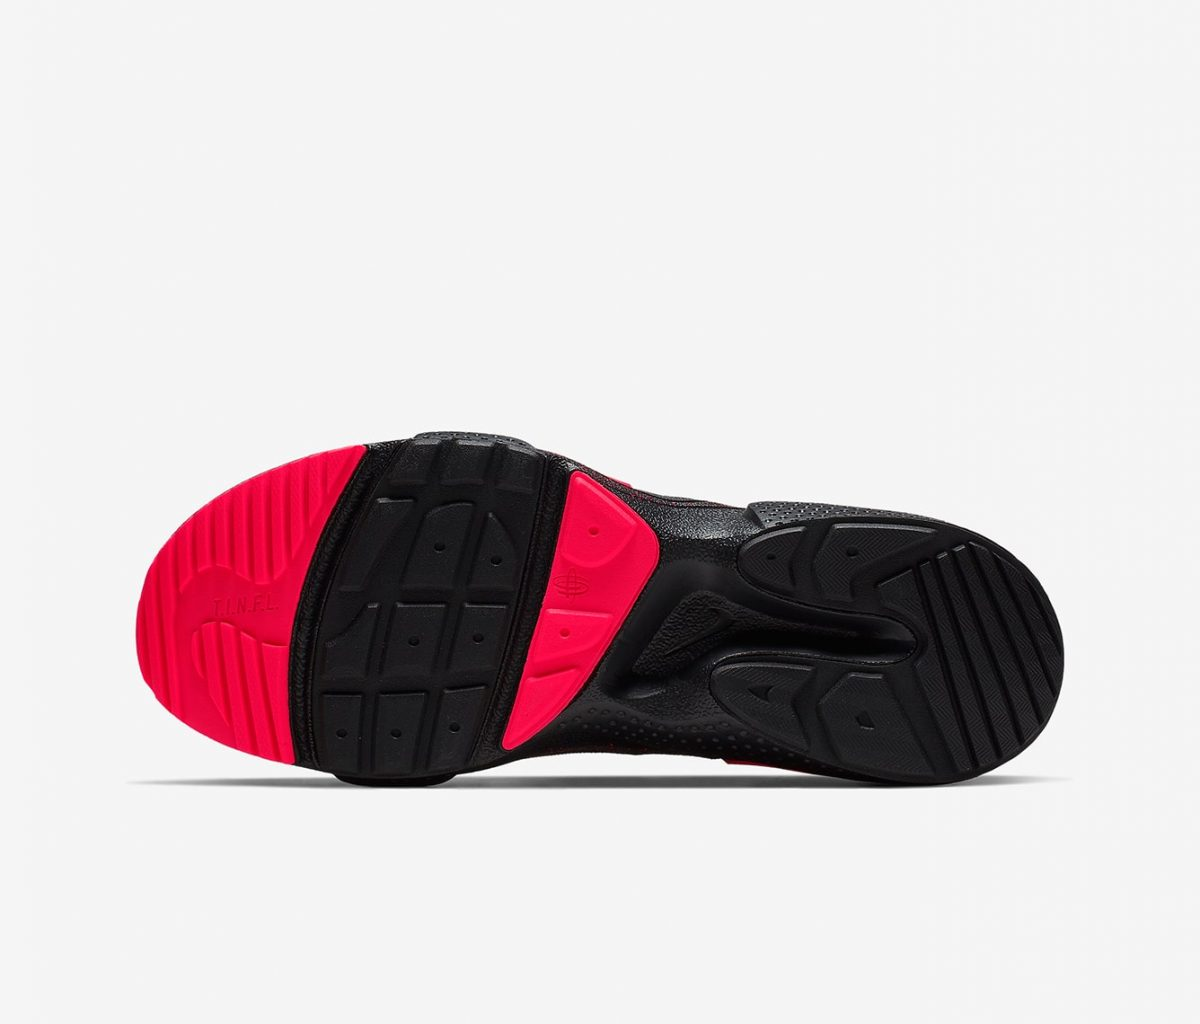 lowest discount exquisite style beauty Nike Add the Huarache E.D.G.E. to it's Racing Theme for All-Star ...